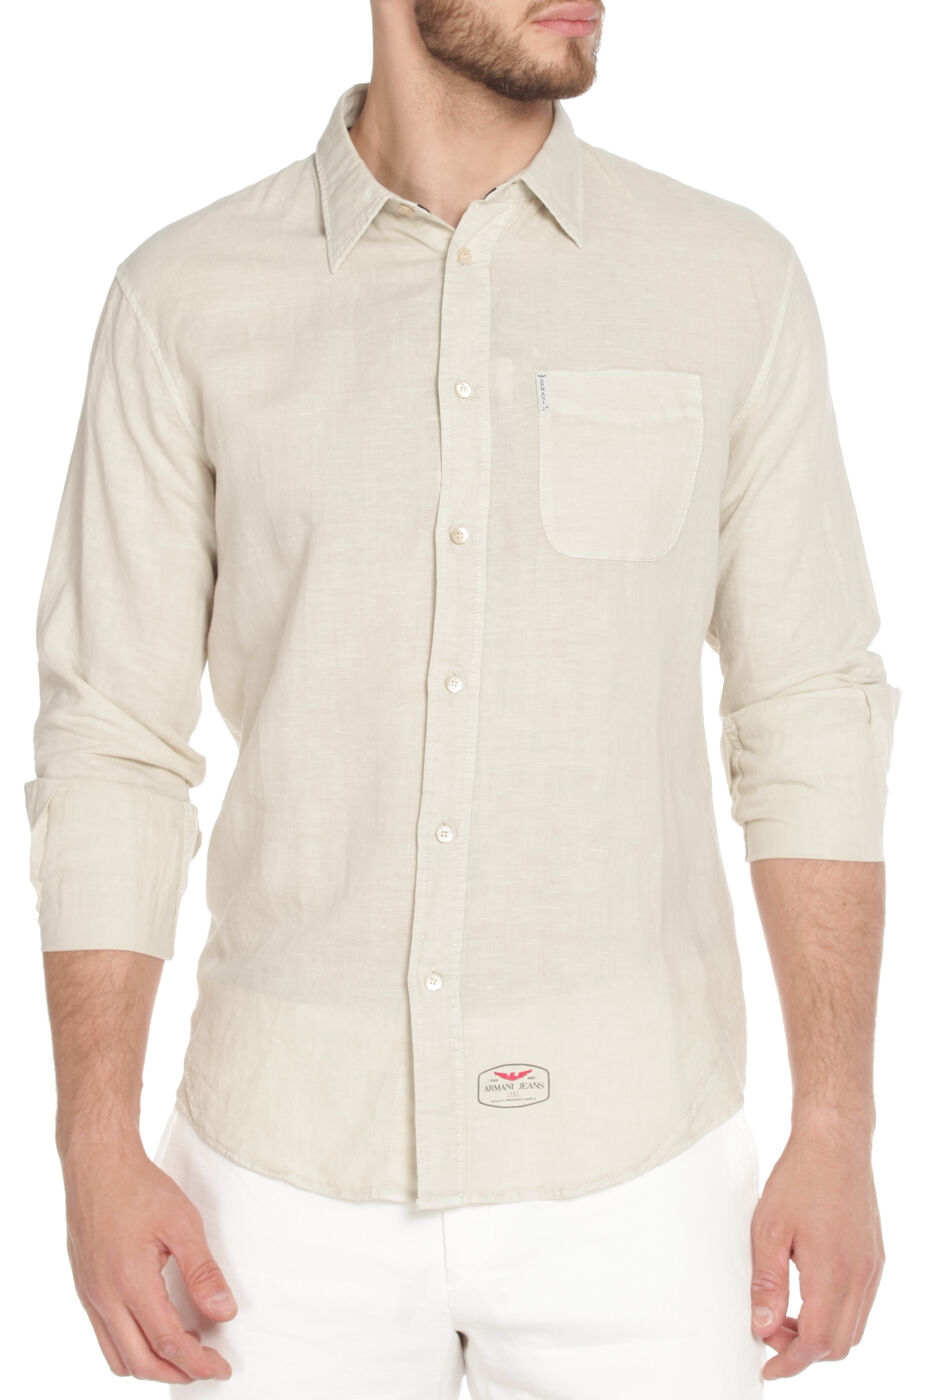 Armani Jeans Mens Casual Beige Linen Blend Shirt All Sizes BNWT